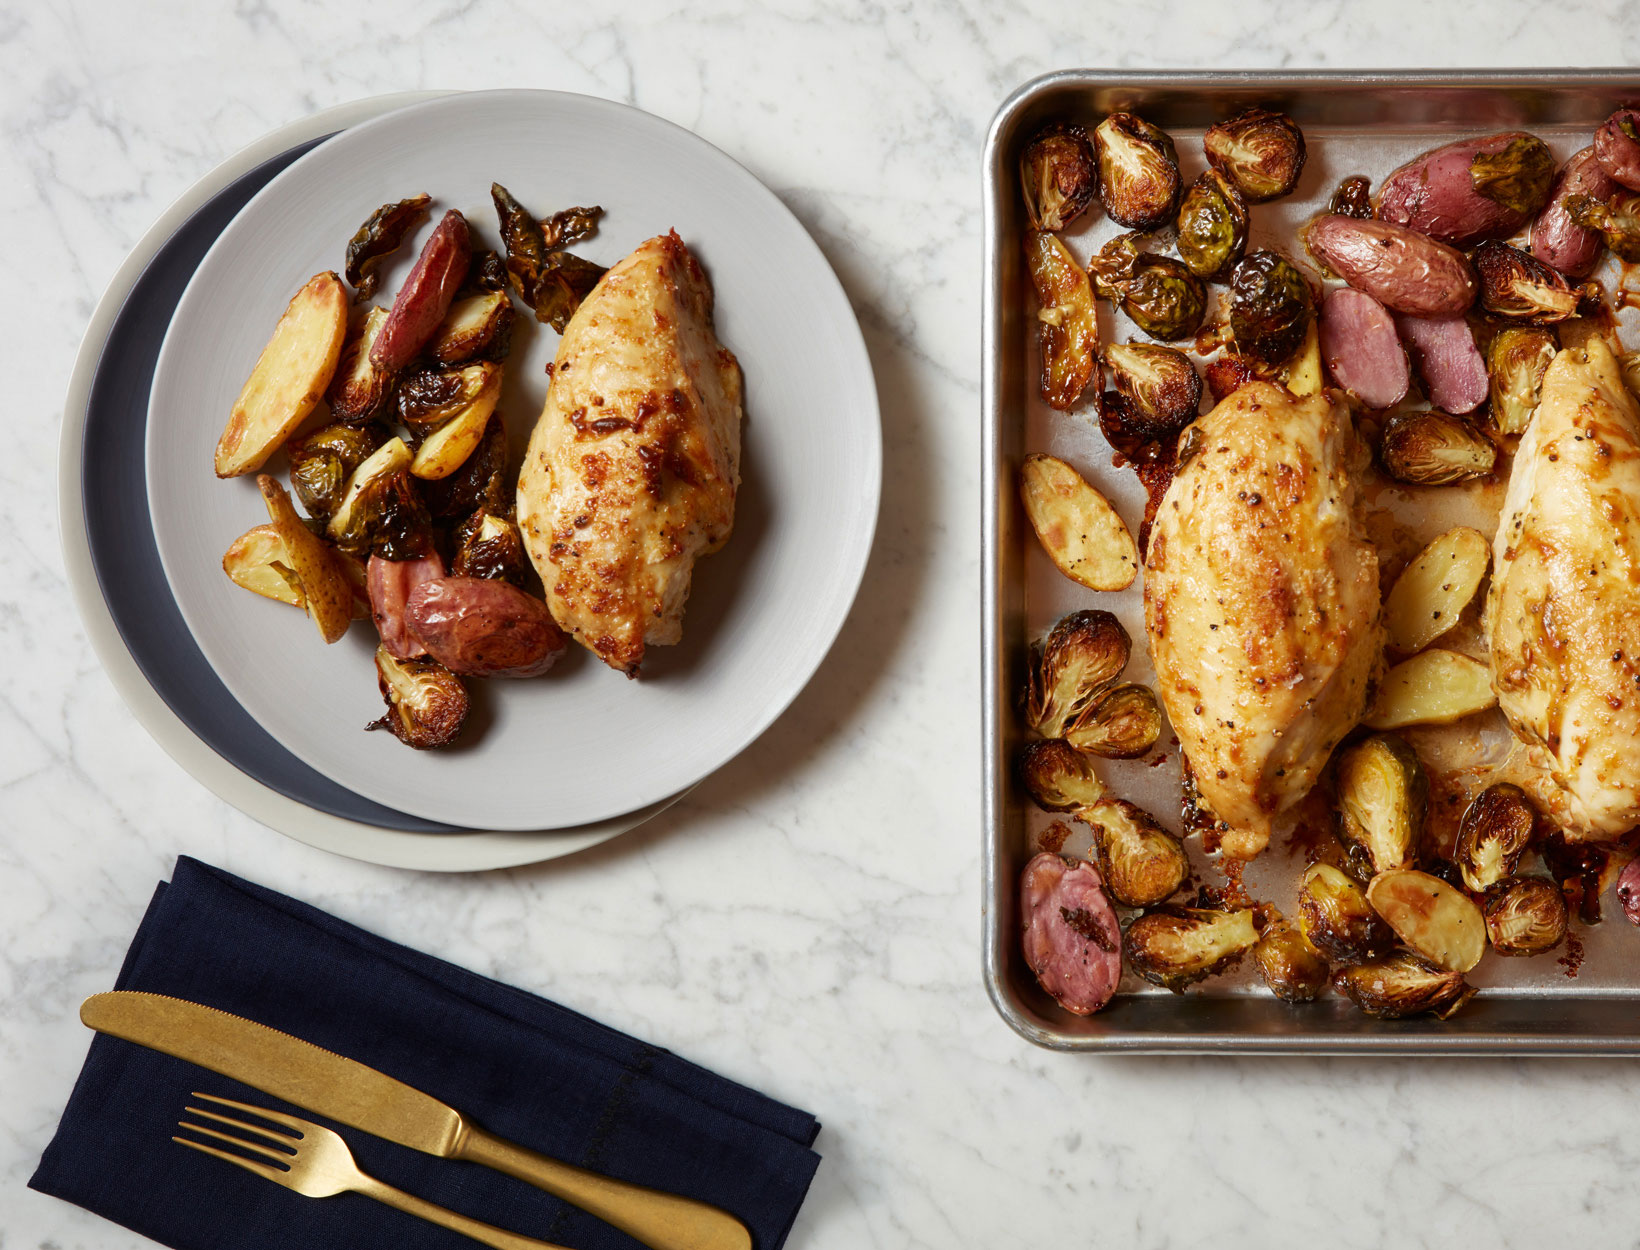 Mustard Chicken Breasts with Brussels Sprouts and Potatoes